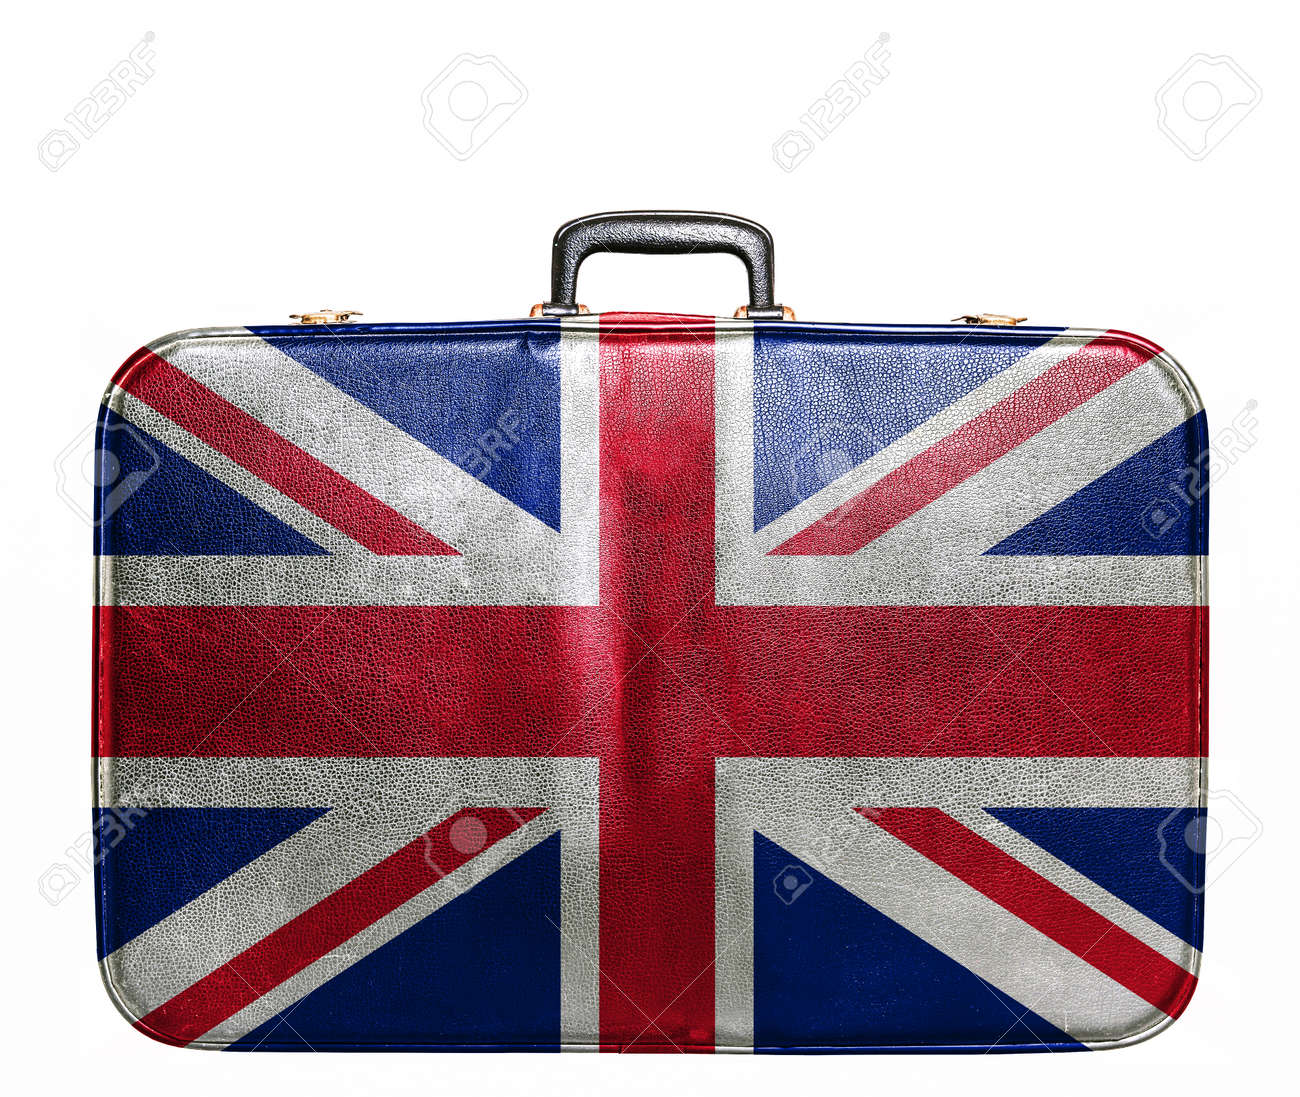 Vintage travel bag with flag of Great Britain - 25443110